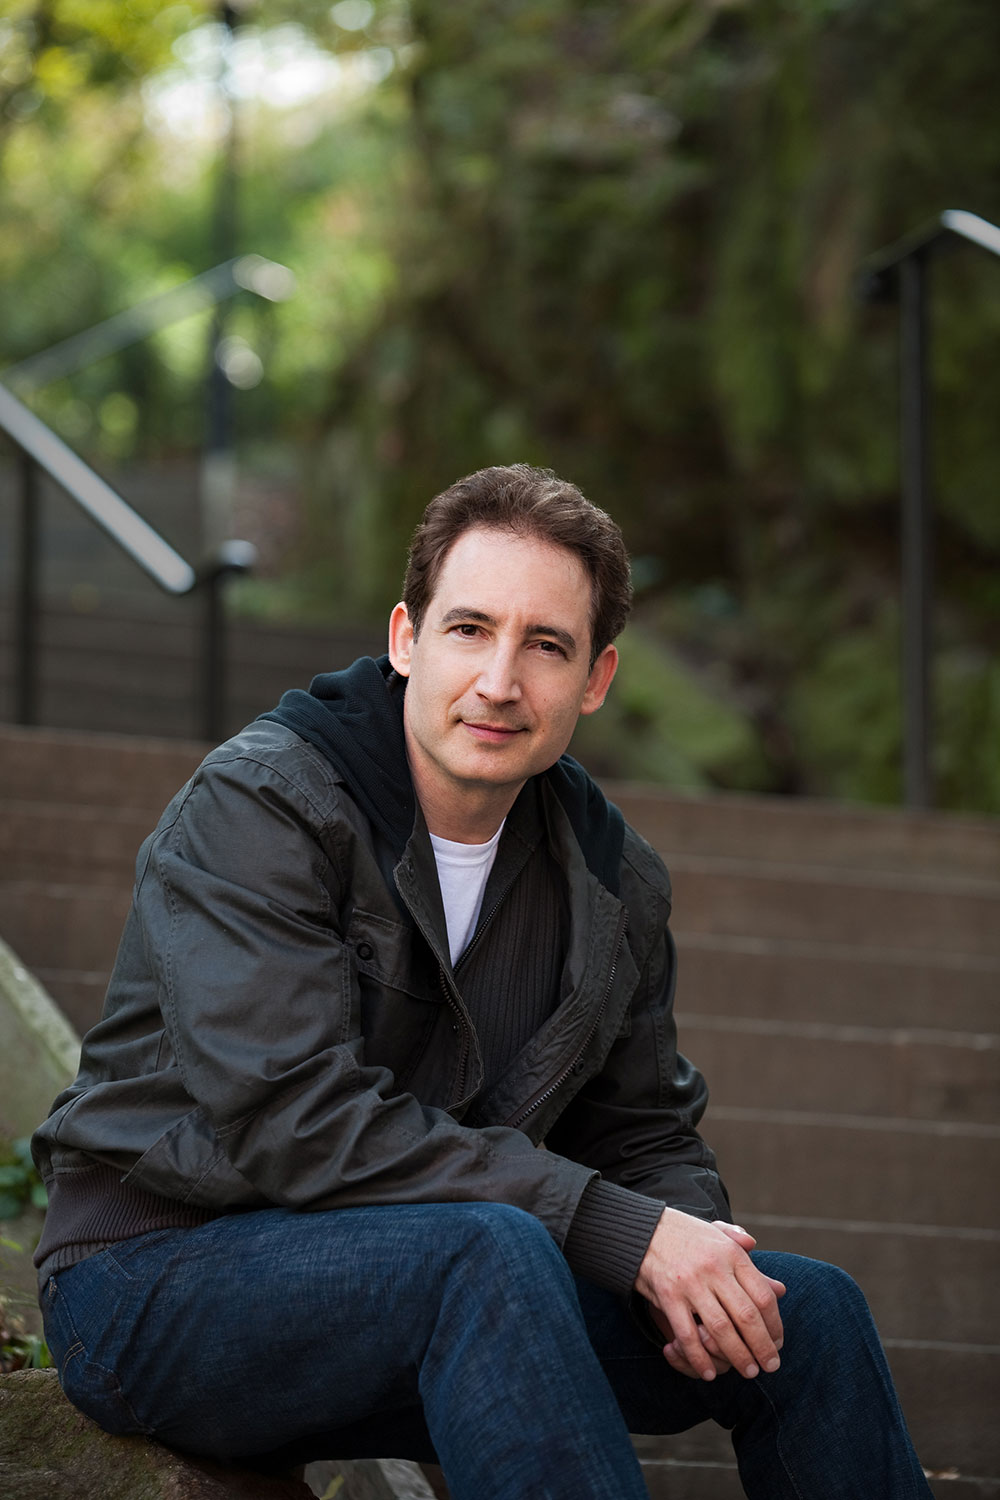 Brian Greene has published four books to date: 'The Hidden Reality,' 'Icarus at the Edge of Time,' 'The Fabric of the Cosmos,' and 'The Elegant Universe.' Credit: Lark Elliott/Vintage Books